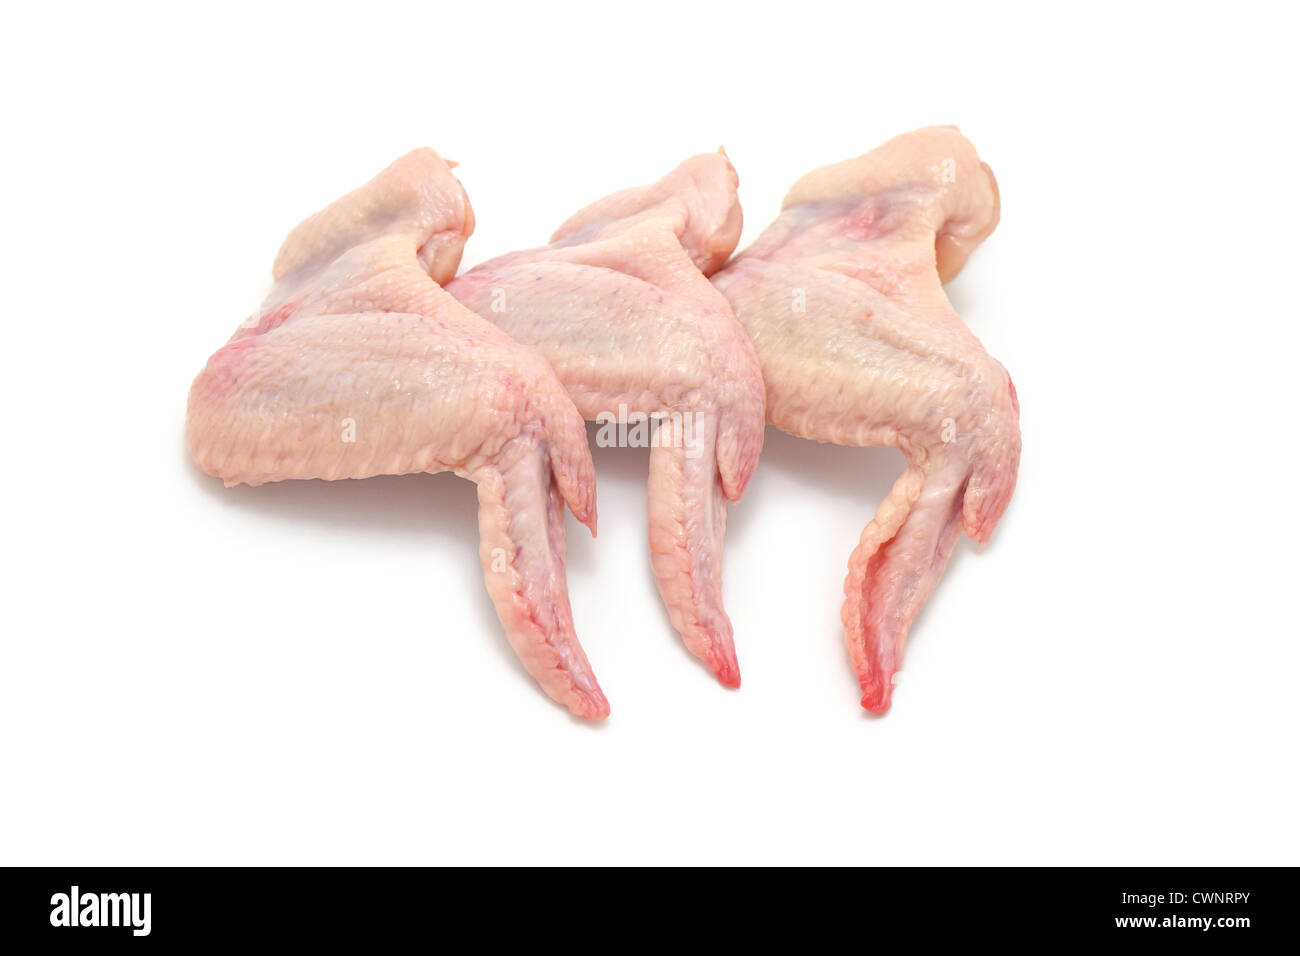 Raw Chicken Wings - Stock Image